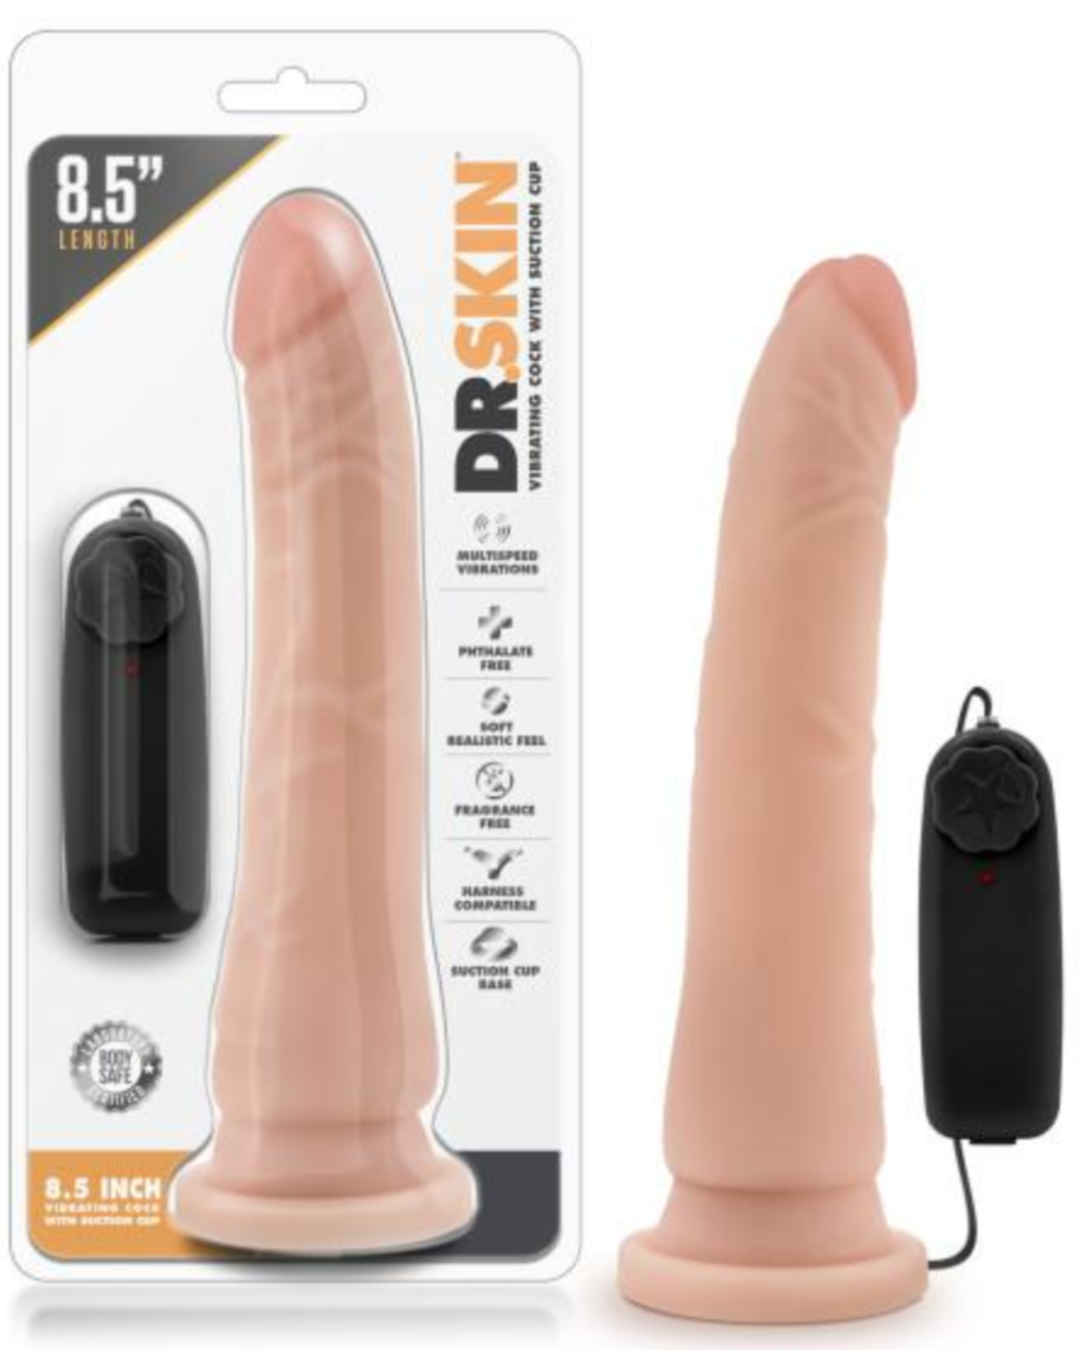 Dr Skin 8.5 Vibrating Dildo By Blush Novelties in Package Vanilla